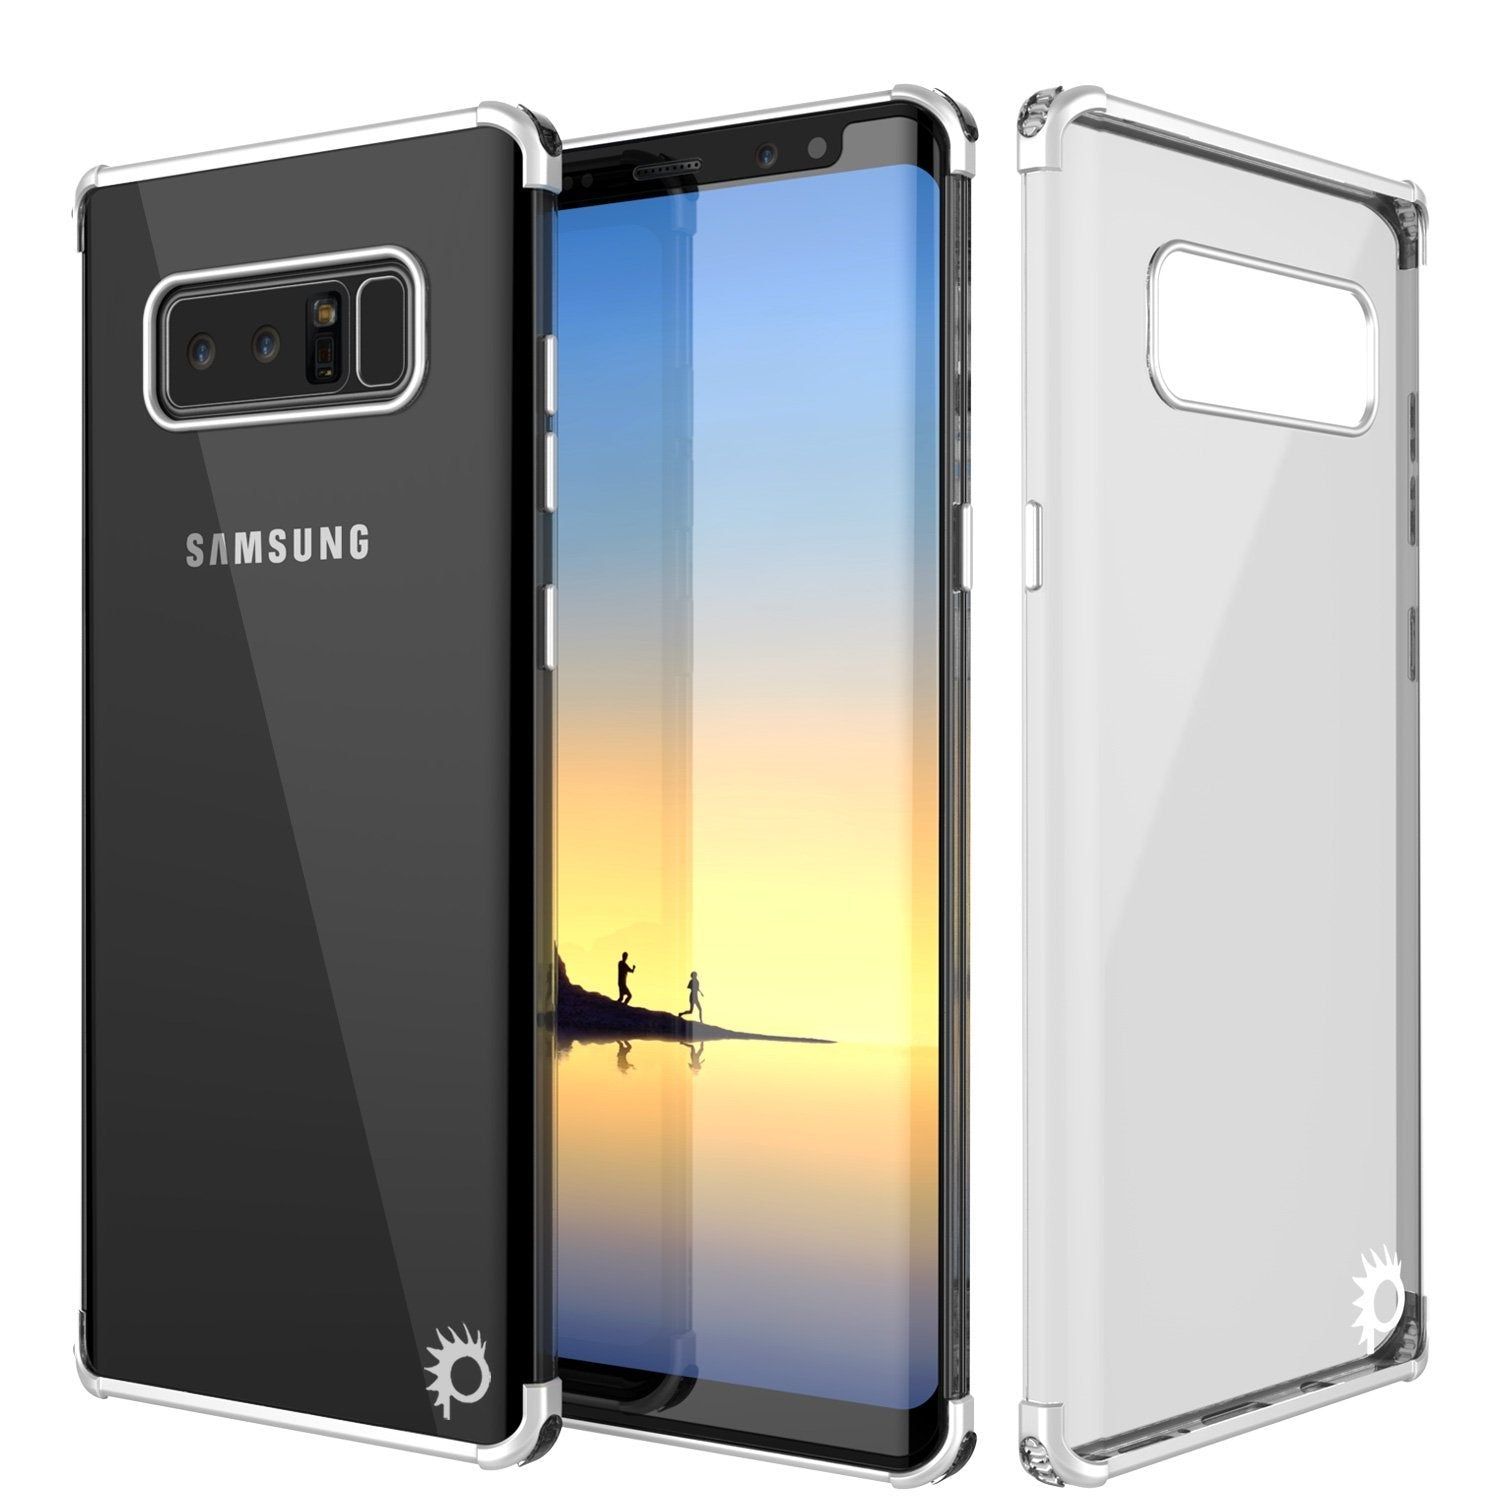 Galaxy Note 8 Punkcase Slim-Fit Case W/ Screen Protector [Silver]